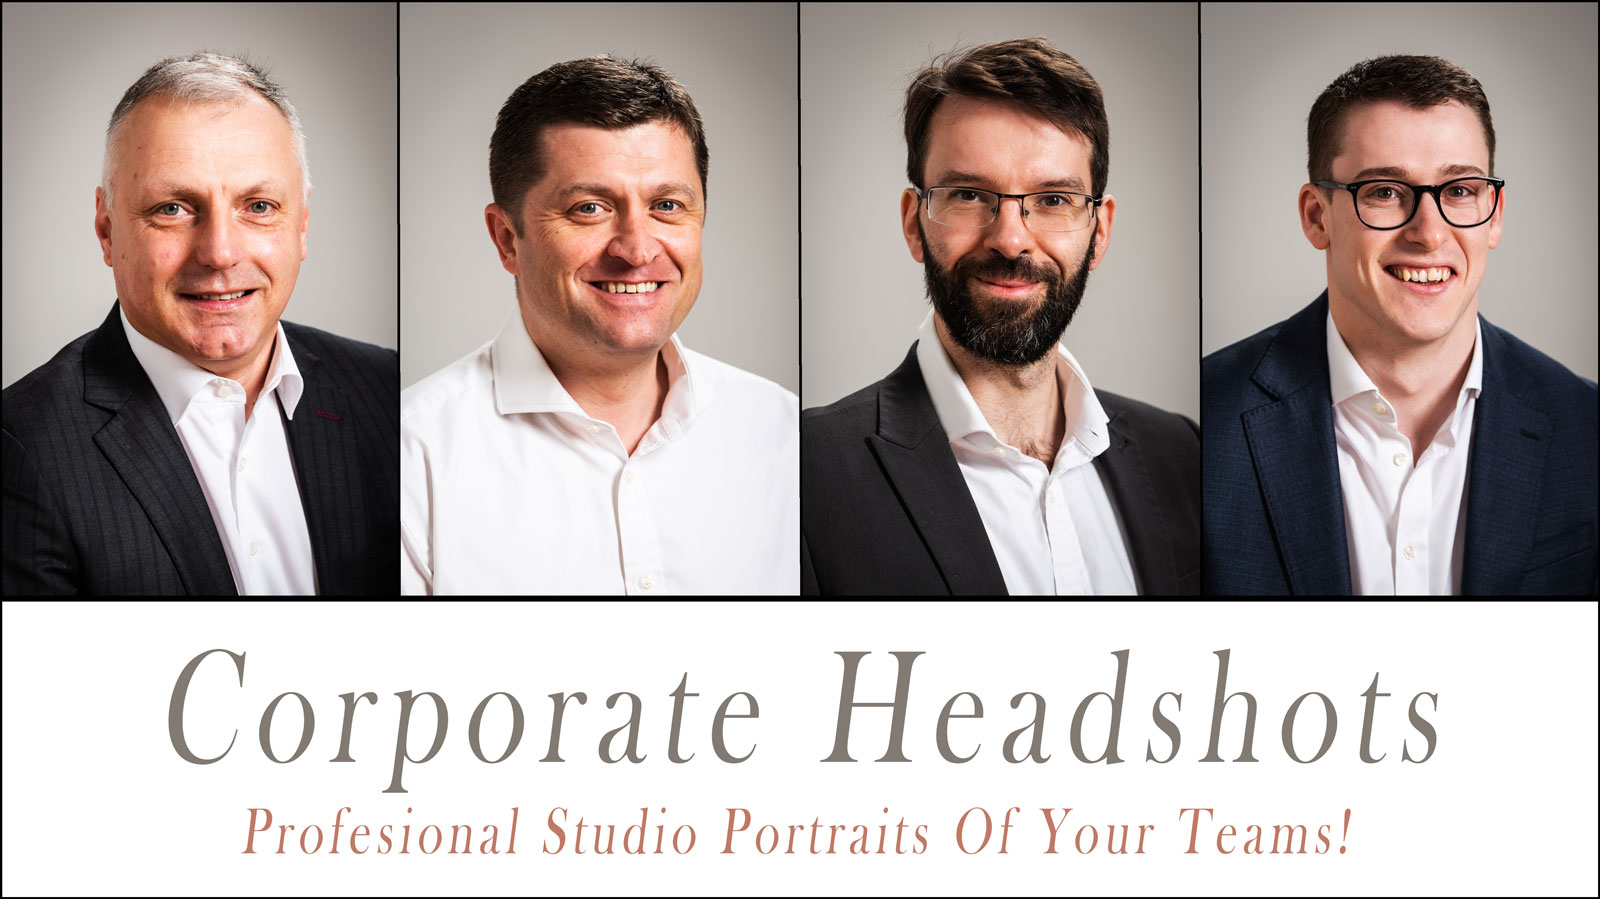 Business Headshot Photographers F11 Photography